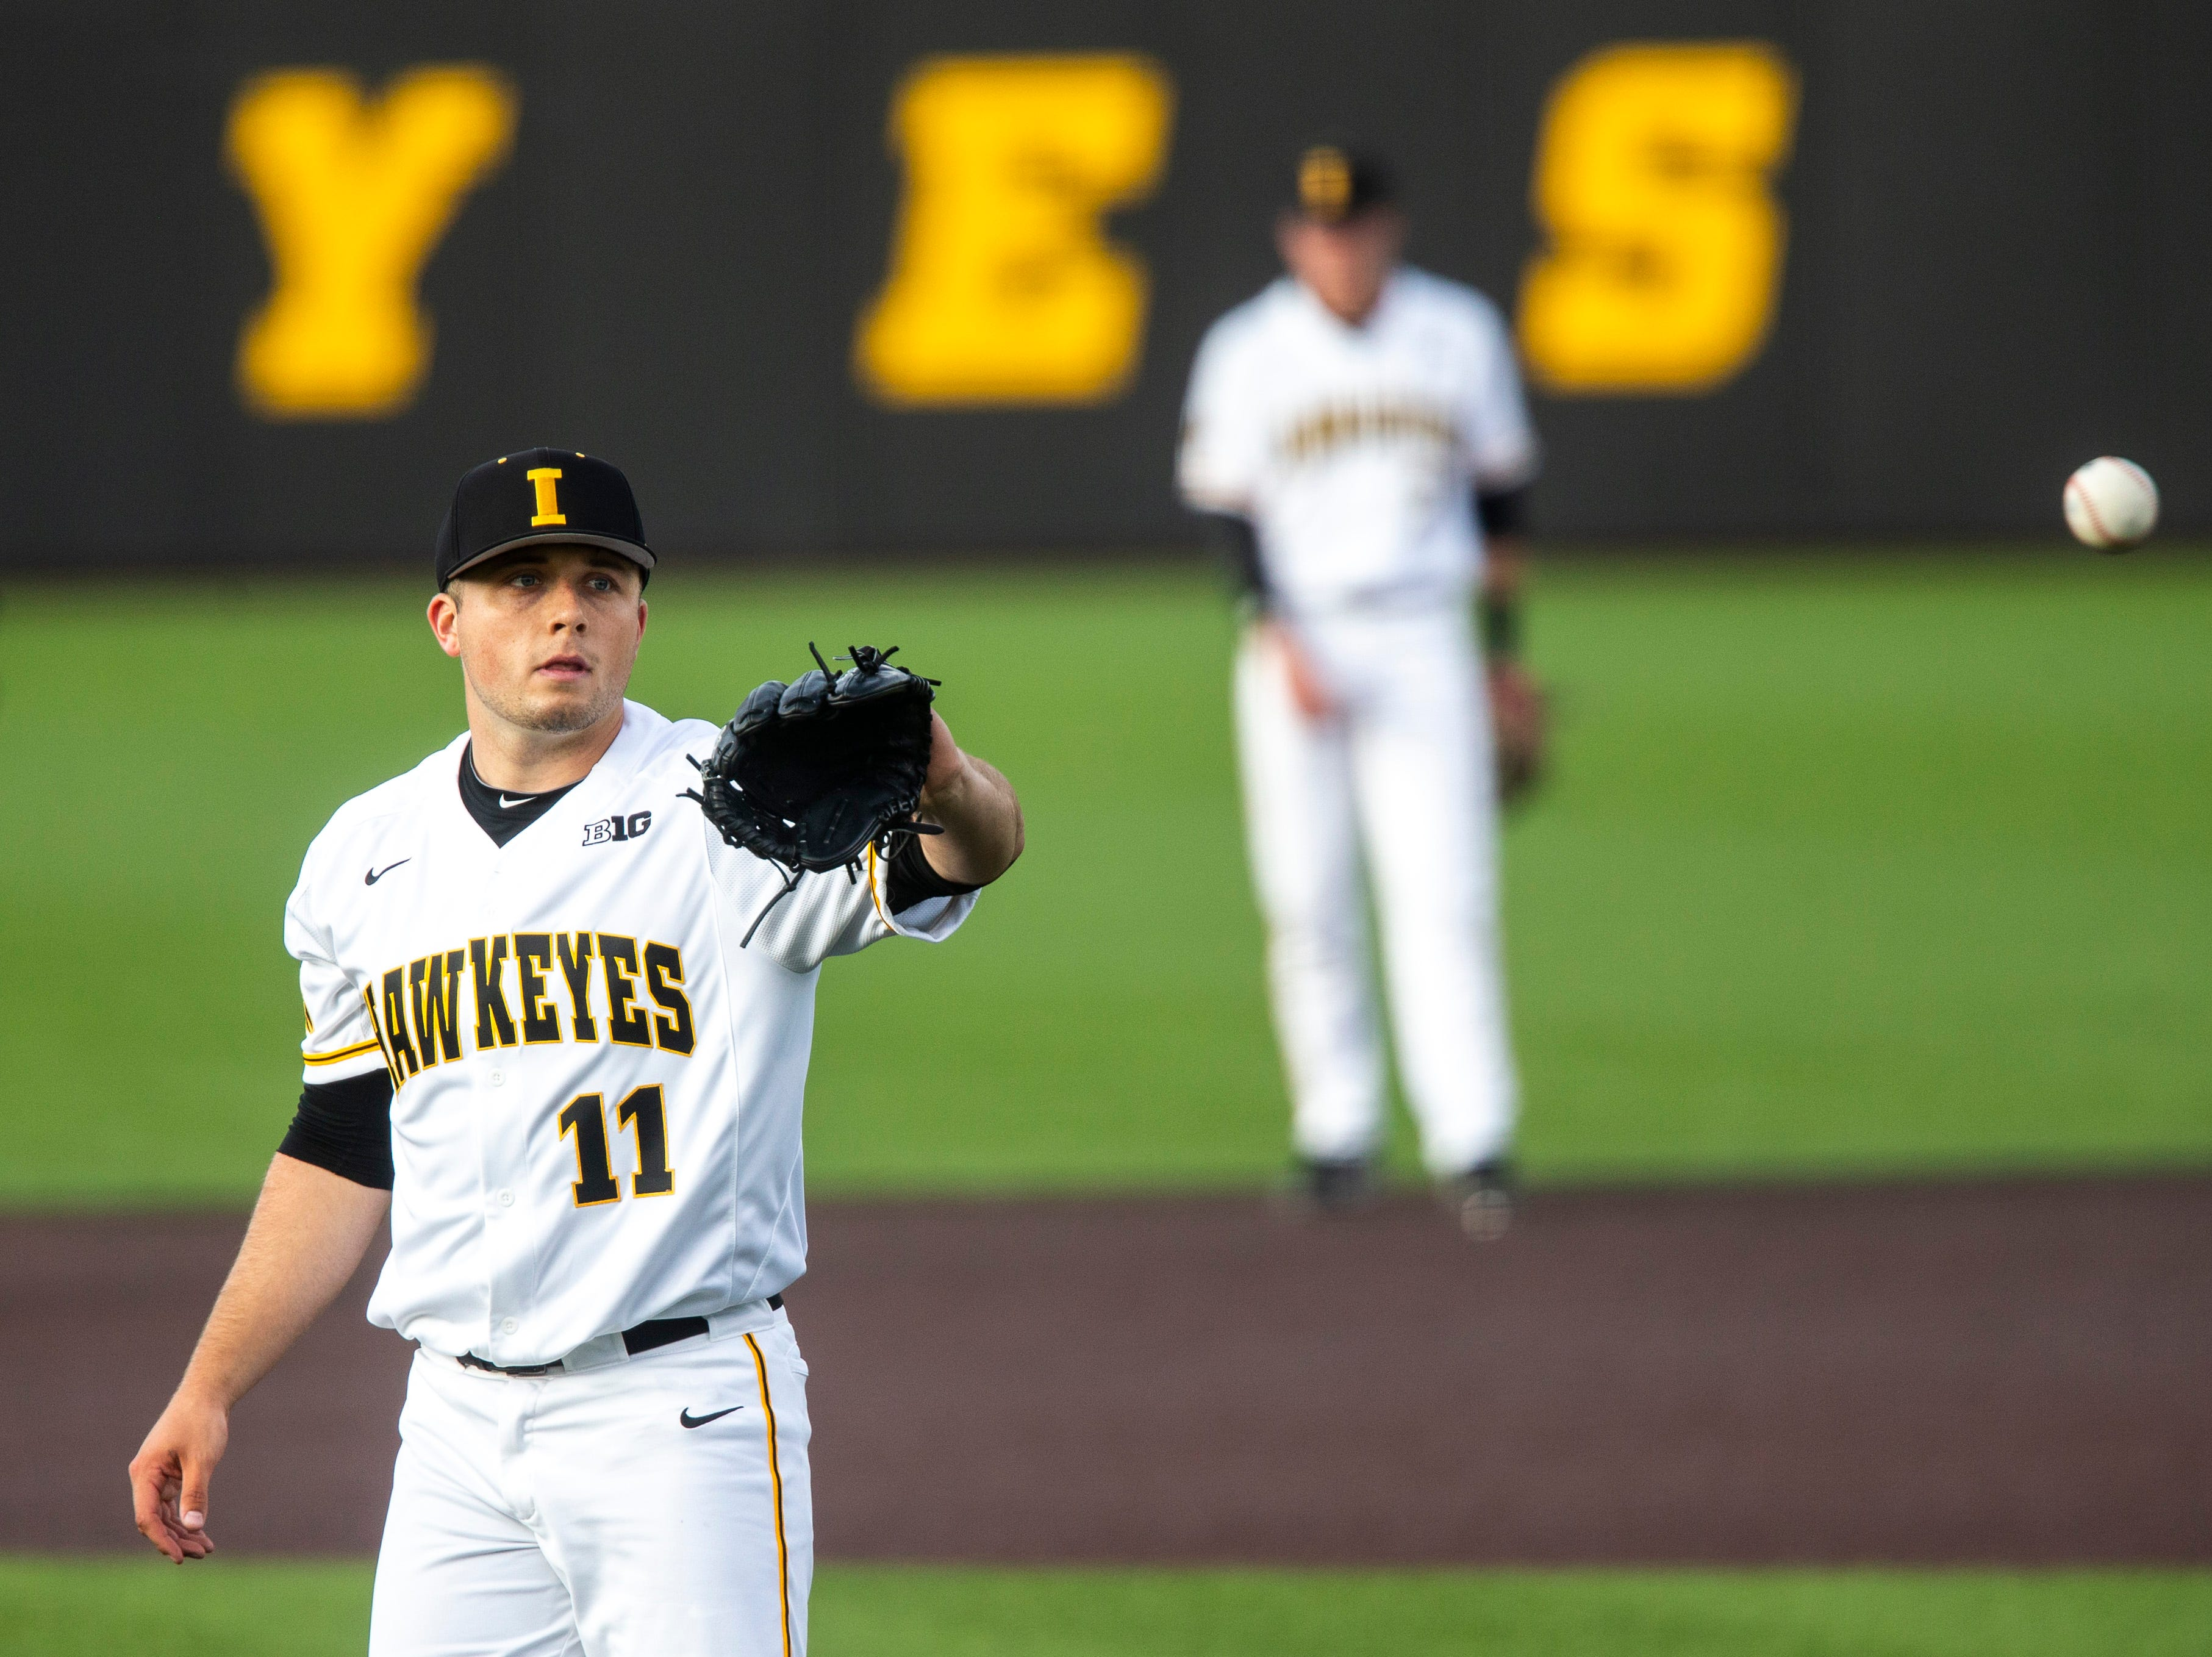 Iowa pitcher Cole McDonald (11) catches a ball on the mound during NCAA non conference baseball game, Friday, May 3, 2019, at Duane Banks Field in Iowa City, Iowa.